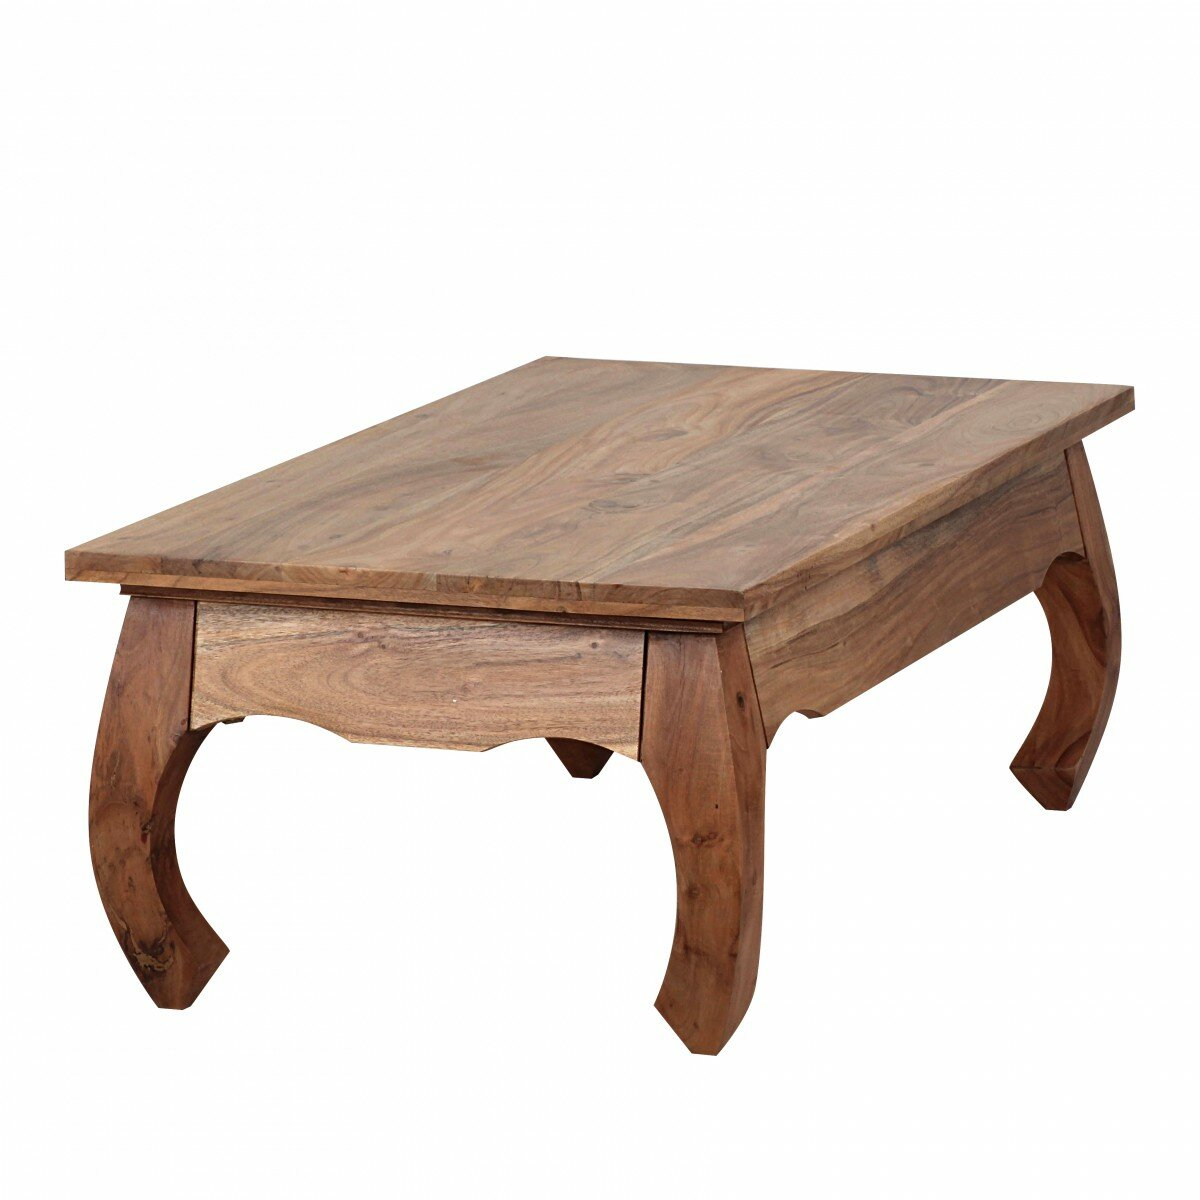 Home Haus Coffee Table Wayfair Uk